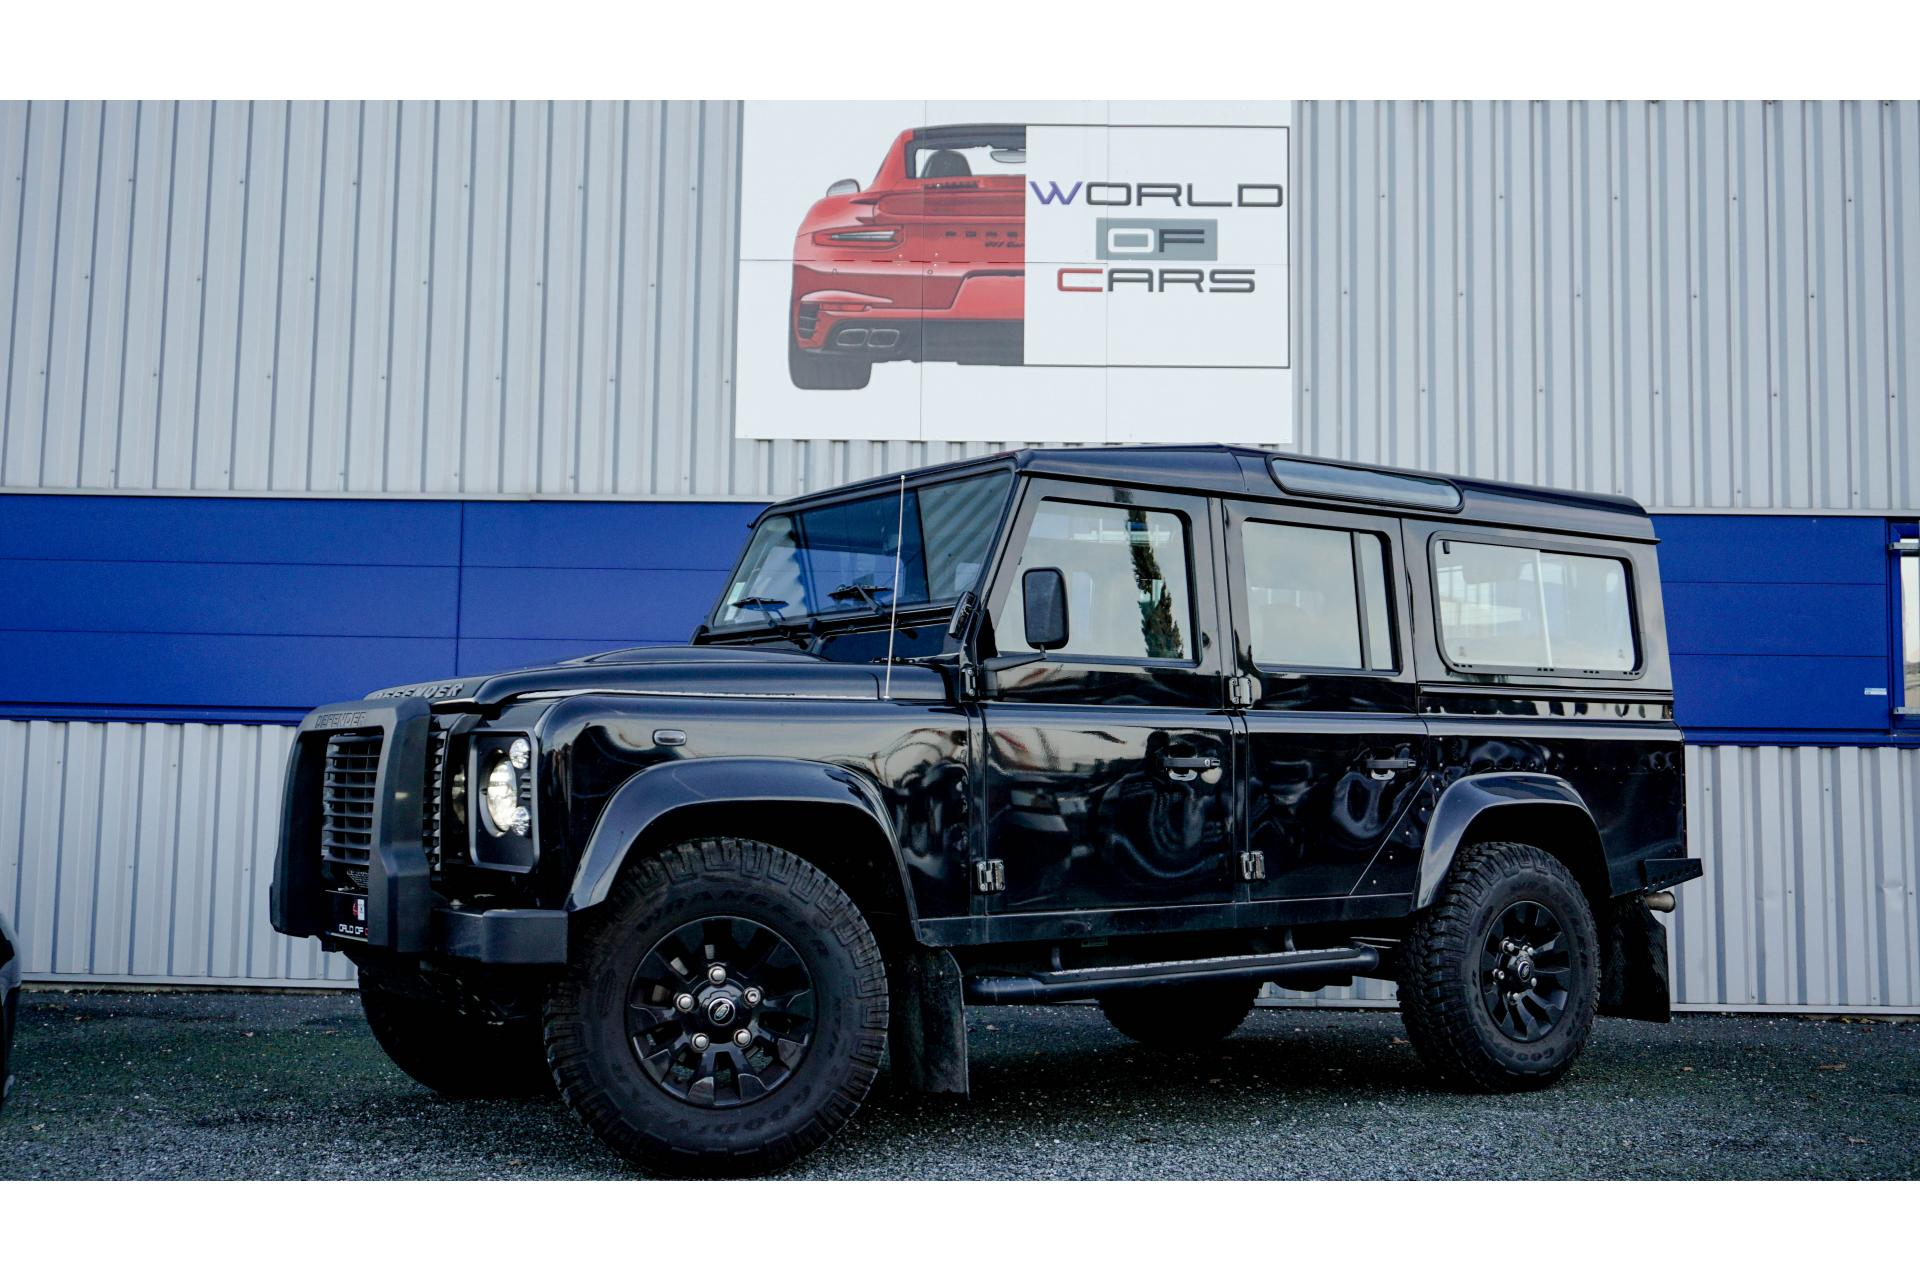 LAND-ROVER Defender 110 Crew Cab SE Mark VI